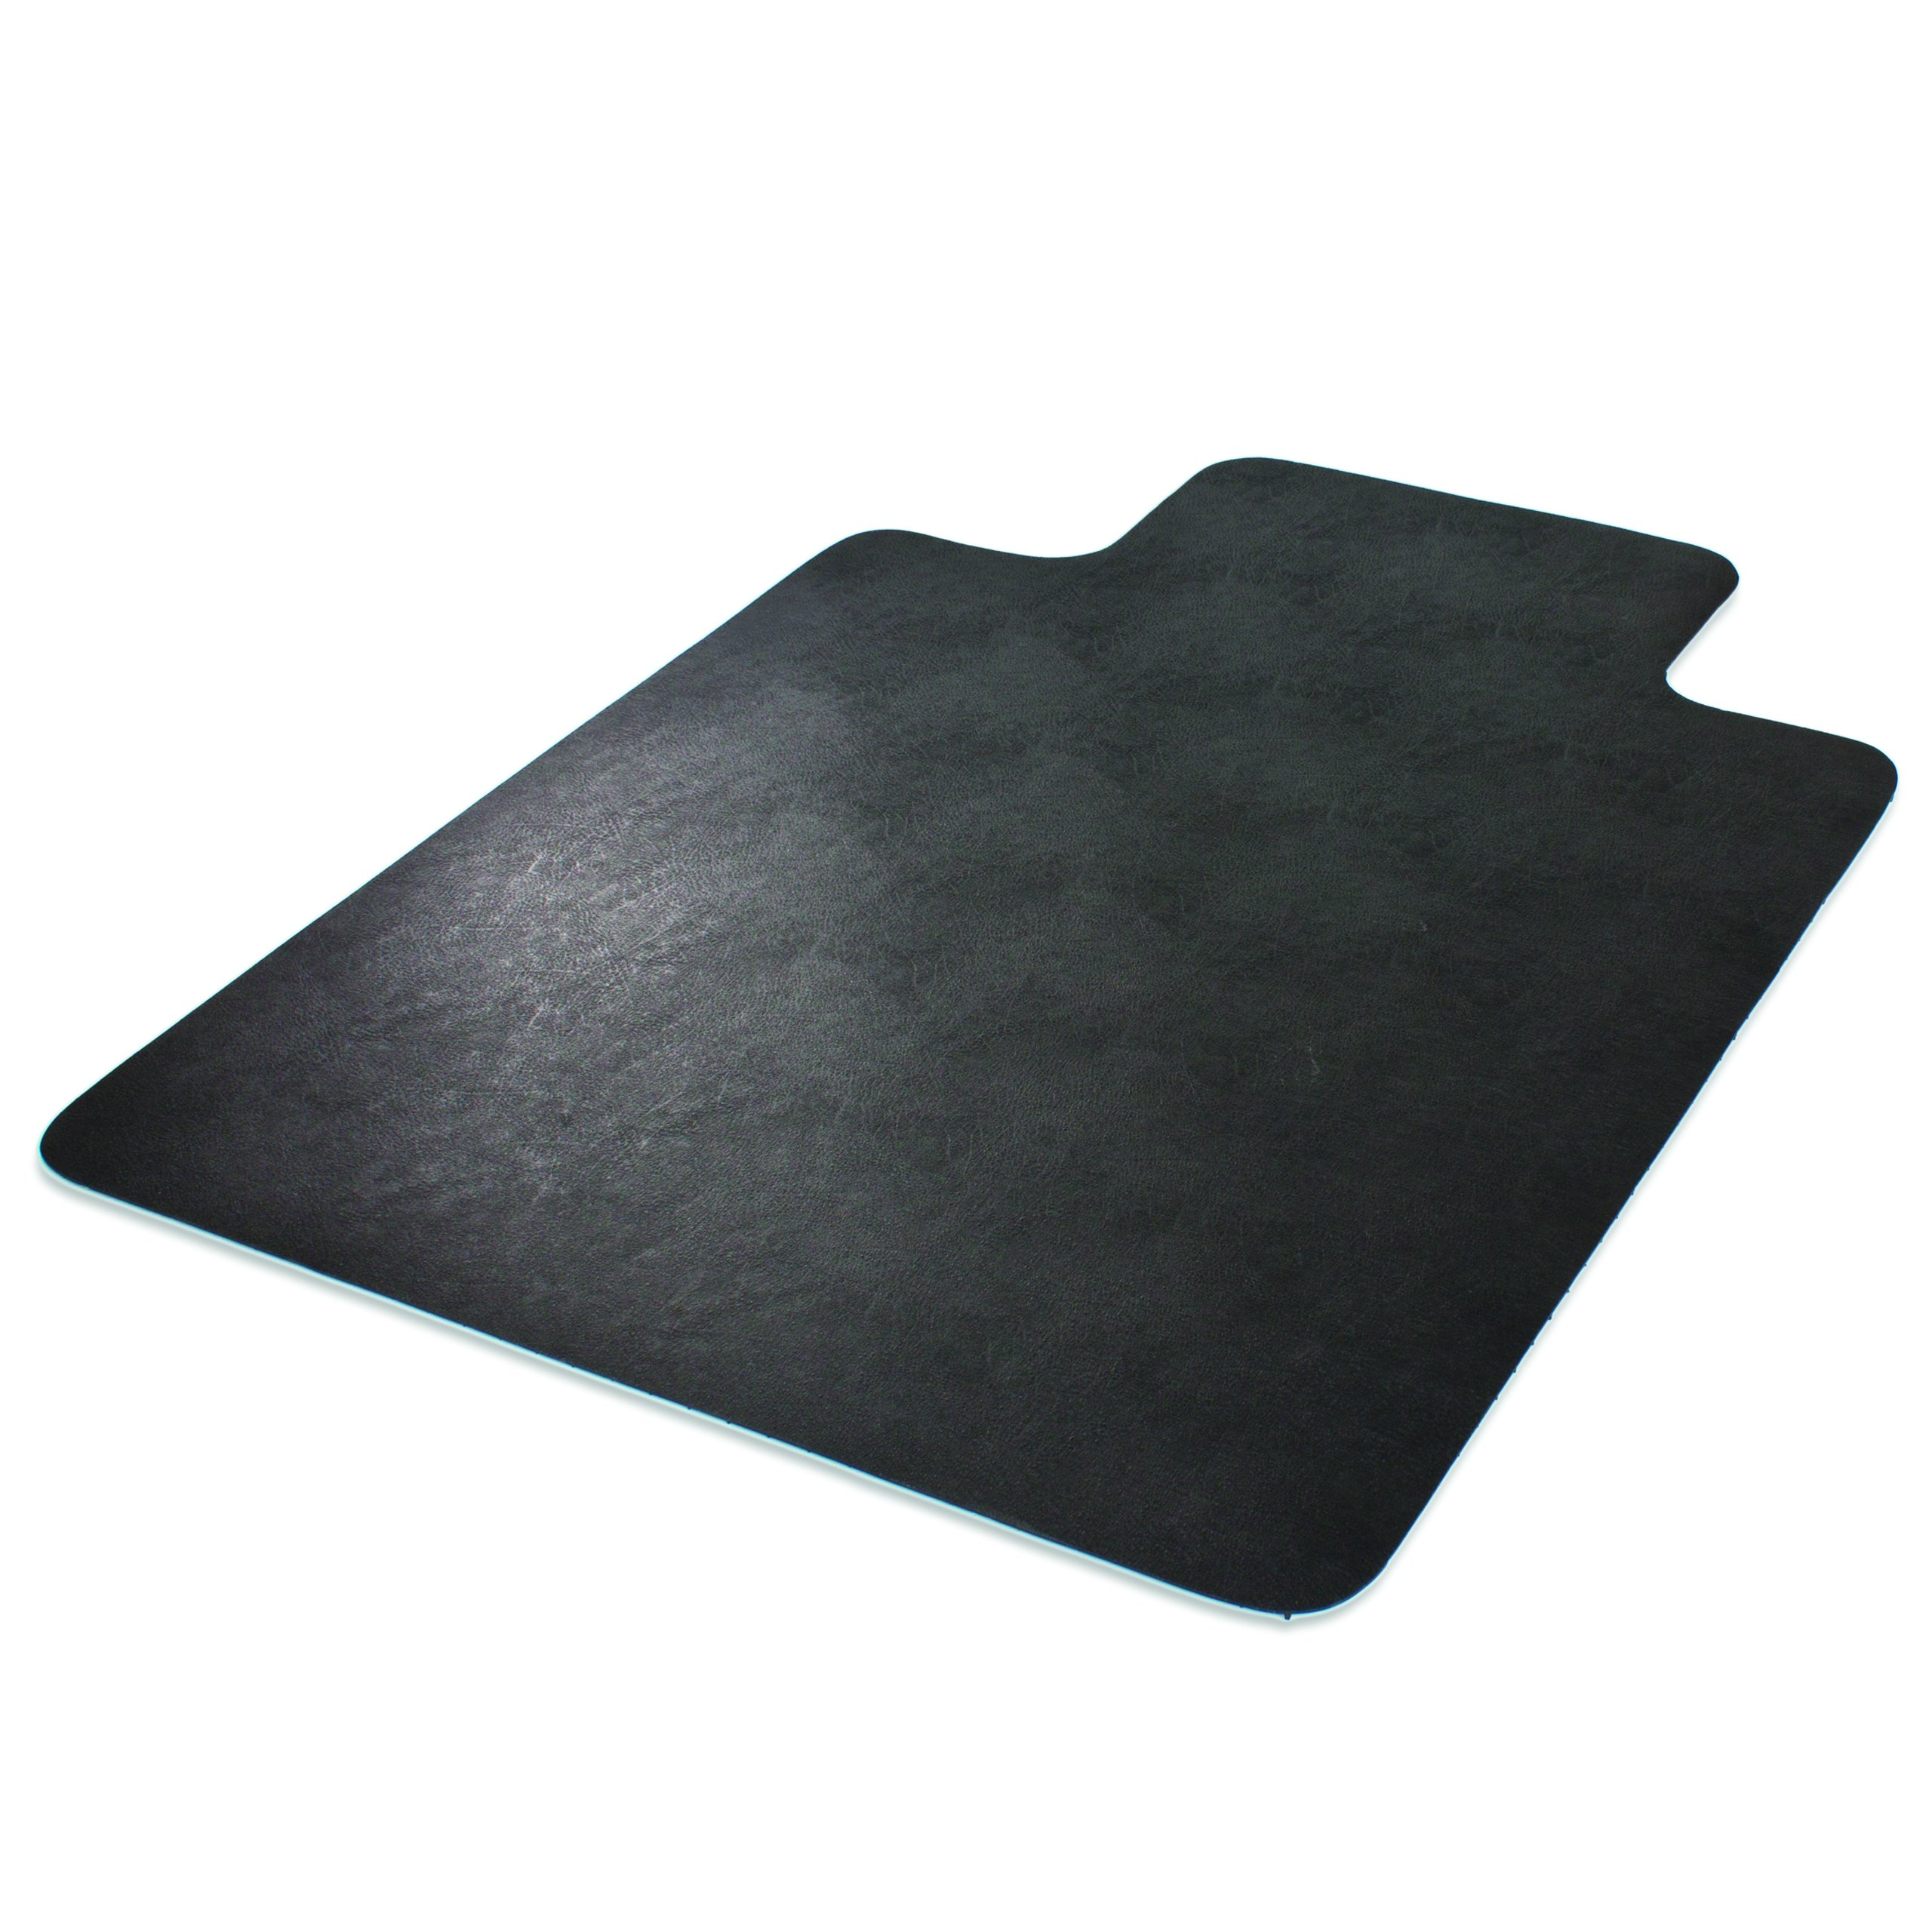 Deflecto EconoMat Chair Mat, Non-Studded for Hard Floors, Straight Edge, 45'' x 53'', Black (CM21232BLKCOM) by Deflecto